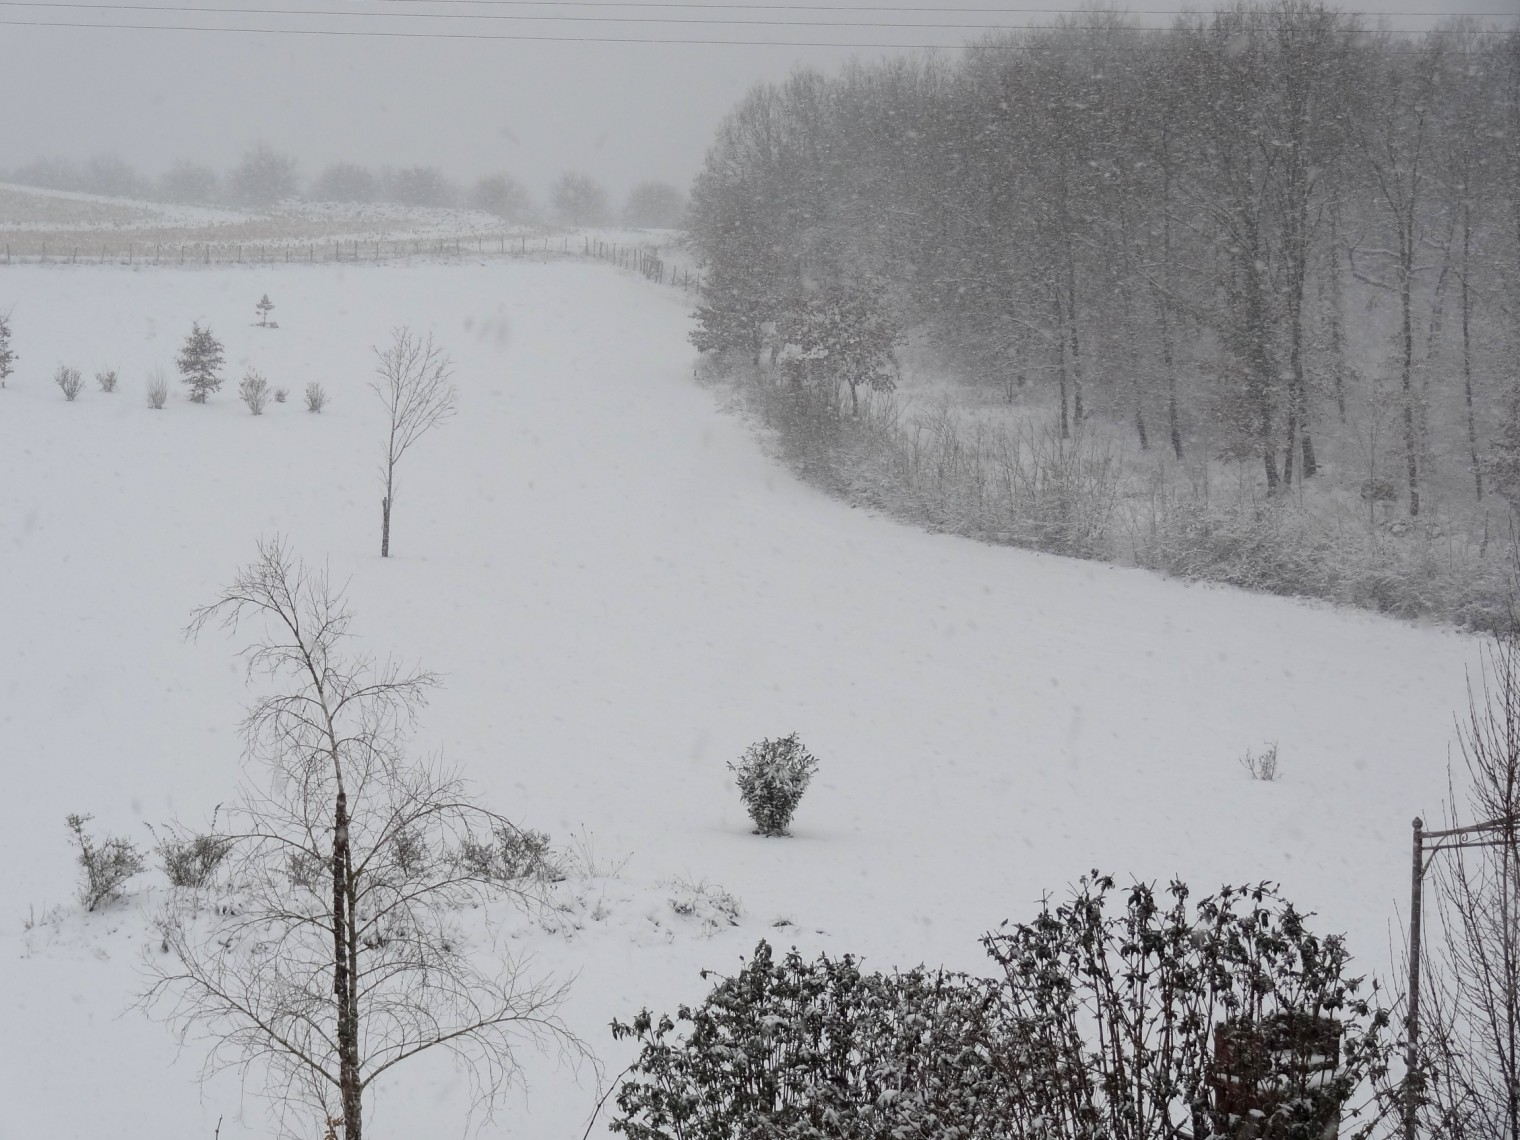 snowing in France at our holiday cottages